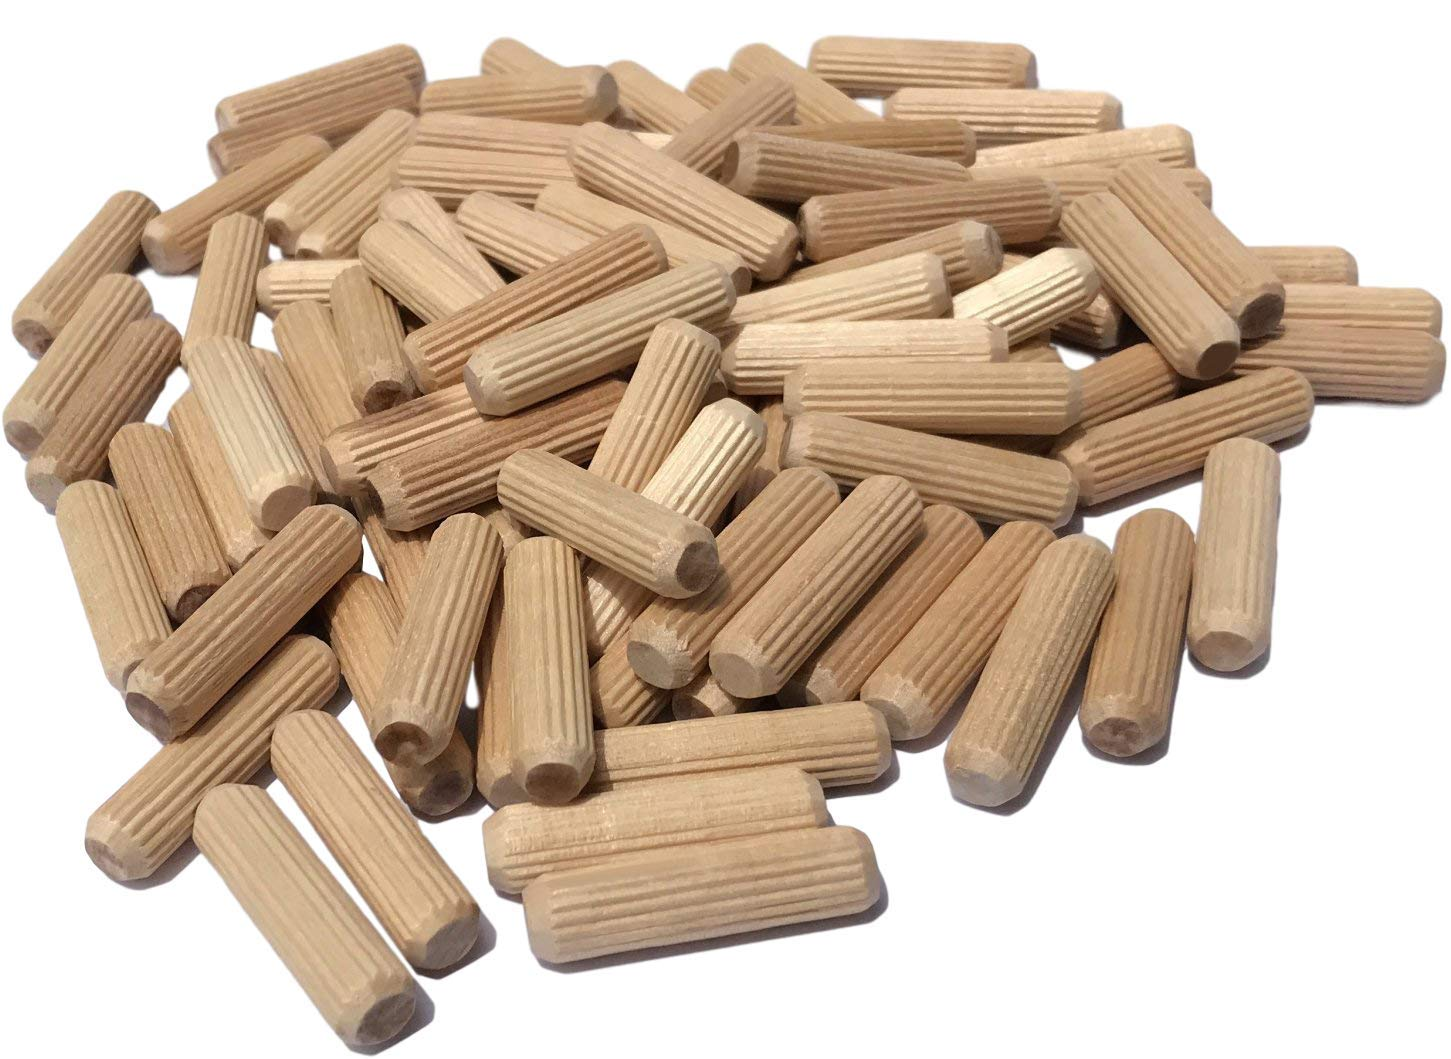 "100 Pack 3/8"" x 1 1/2"" Wooden Dowel Pins Wood Kiln Dried Fluted and Beveled, Made of Hardwood in U.S.A."